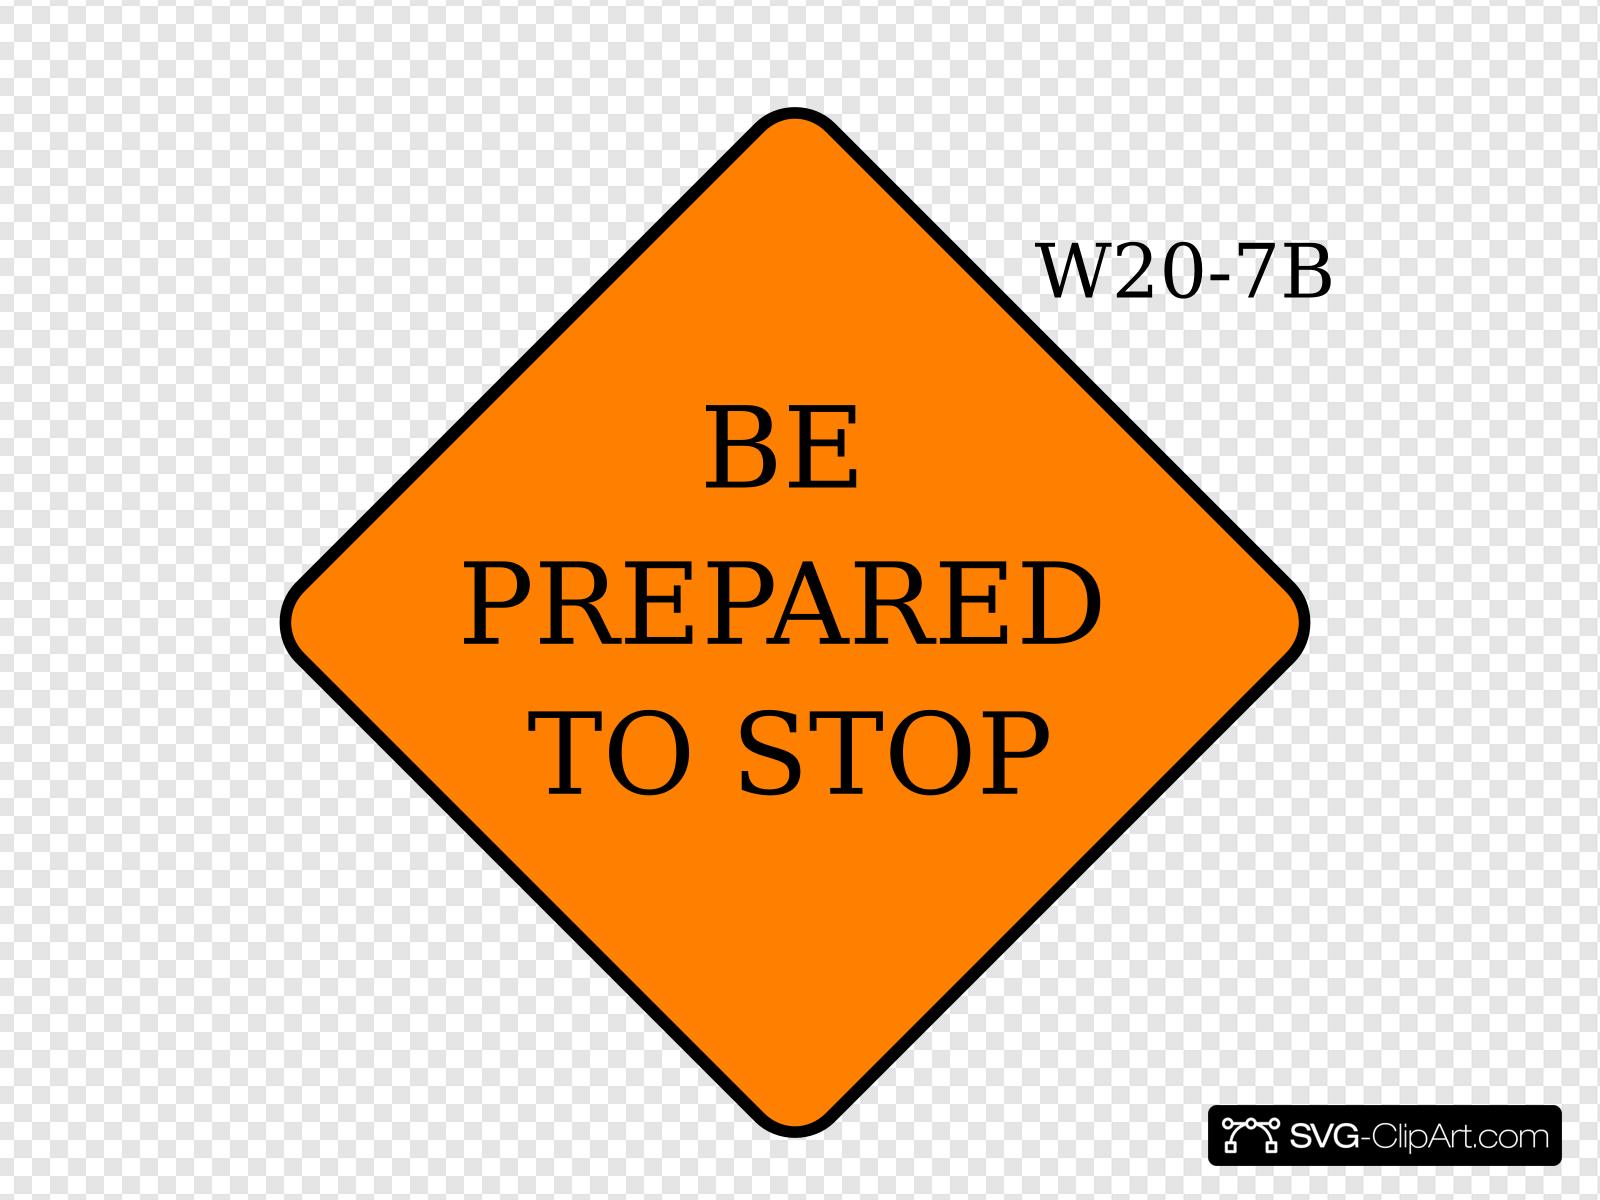 Be Prepared To Stop Clip art, Icon and SVG.